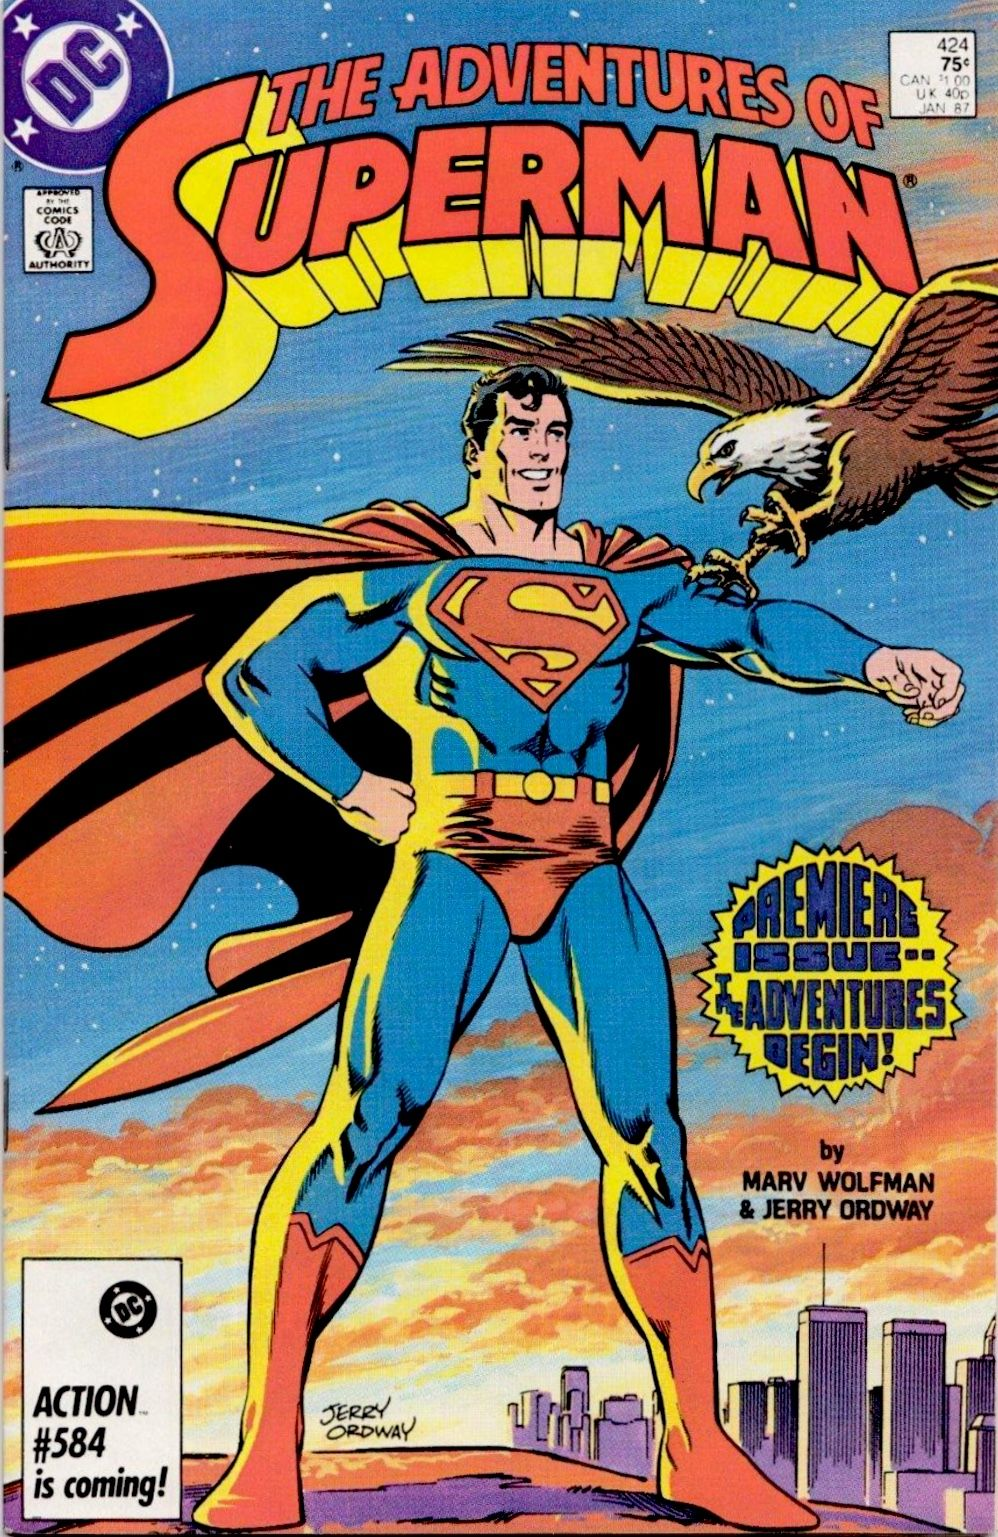 The Adventures Of Superman 424 January 1987 By Marv Wolfman And